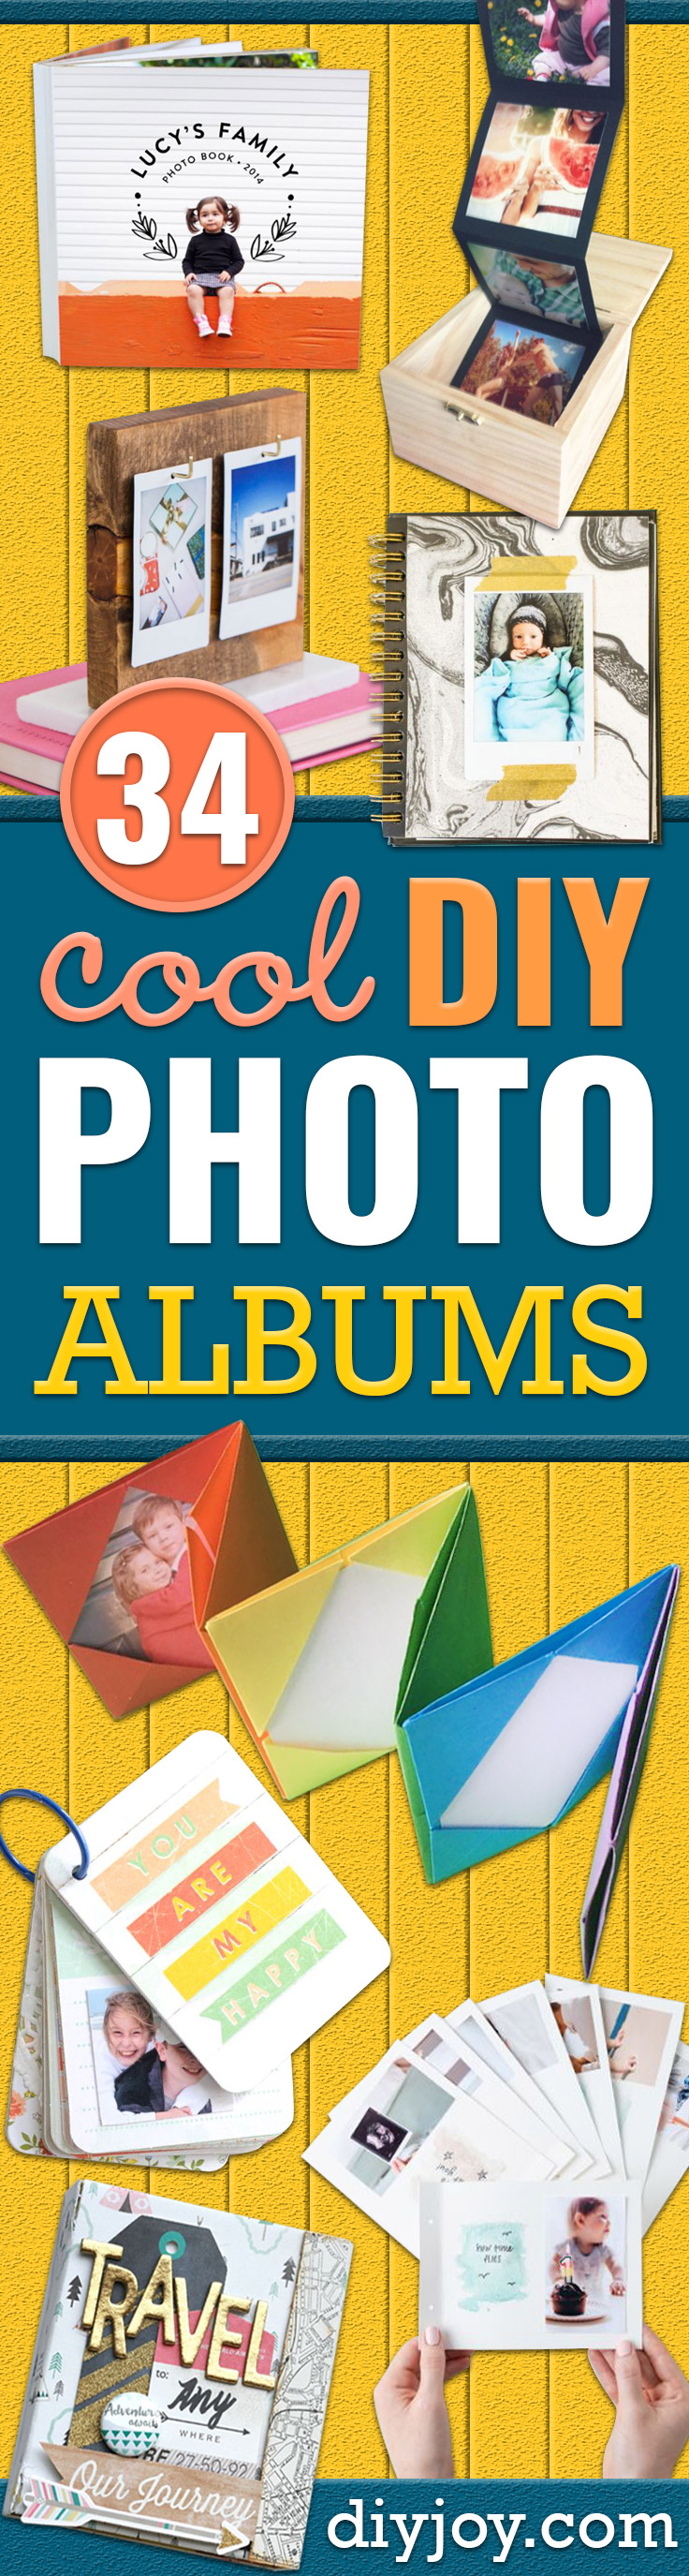 DIY Photo Albums - Easy DIY Christmas Gifts for Grandparents, Friends, Him or Her, Mom and Dad - Creative Ideas for Making Wall Art and Home Decor With Photos